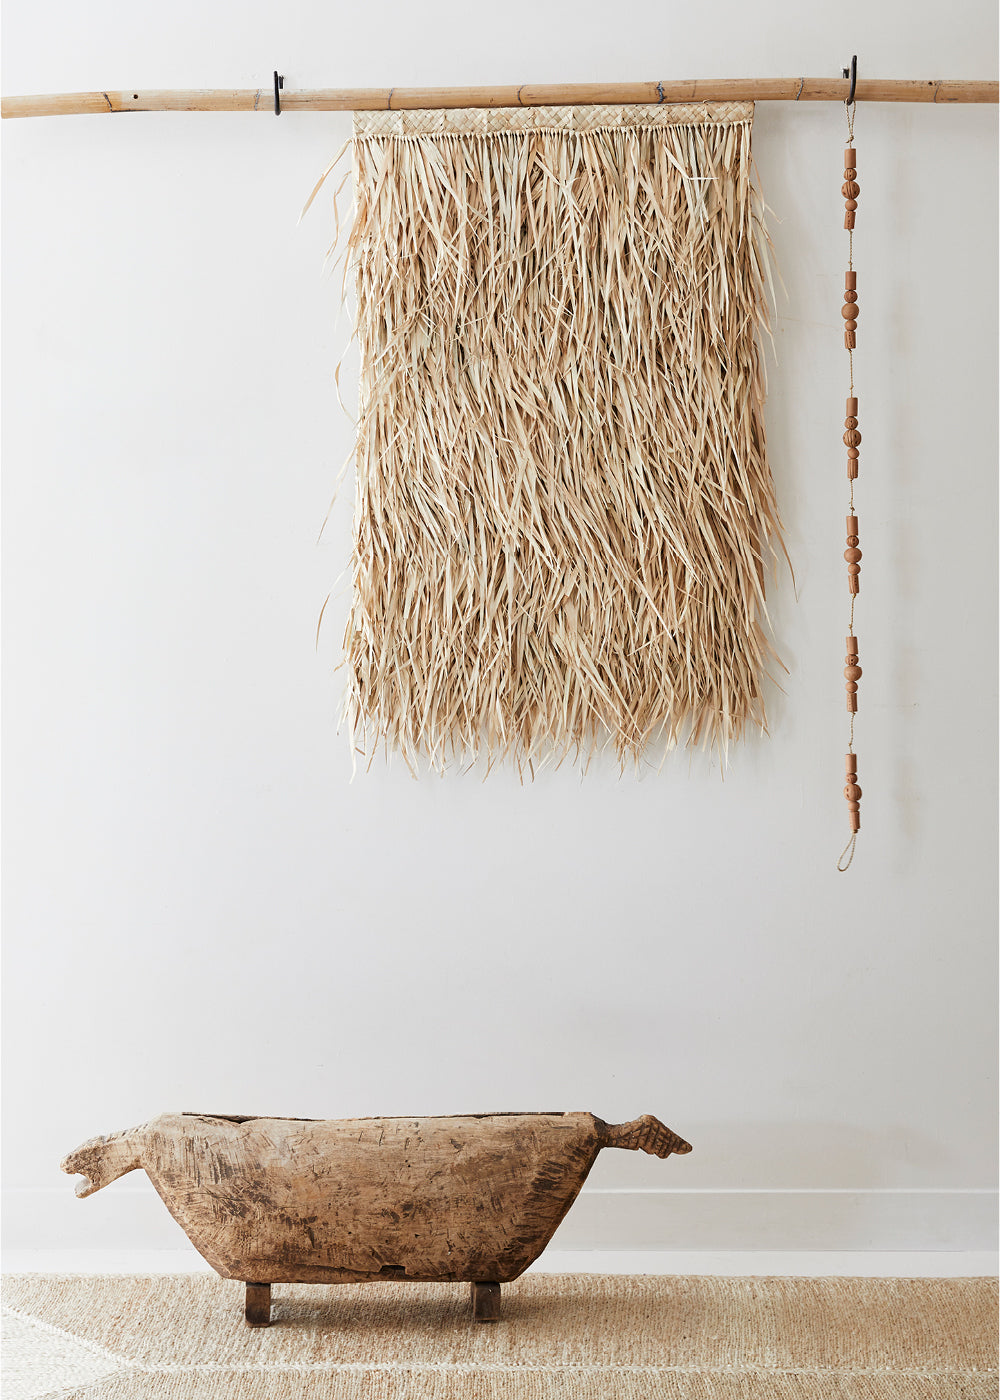 woven wall hanging - handmade palm leaf wall hanging hung on bamboo pole.